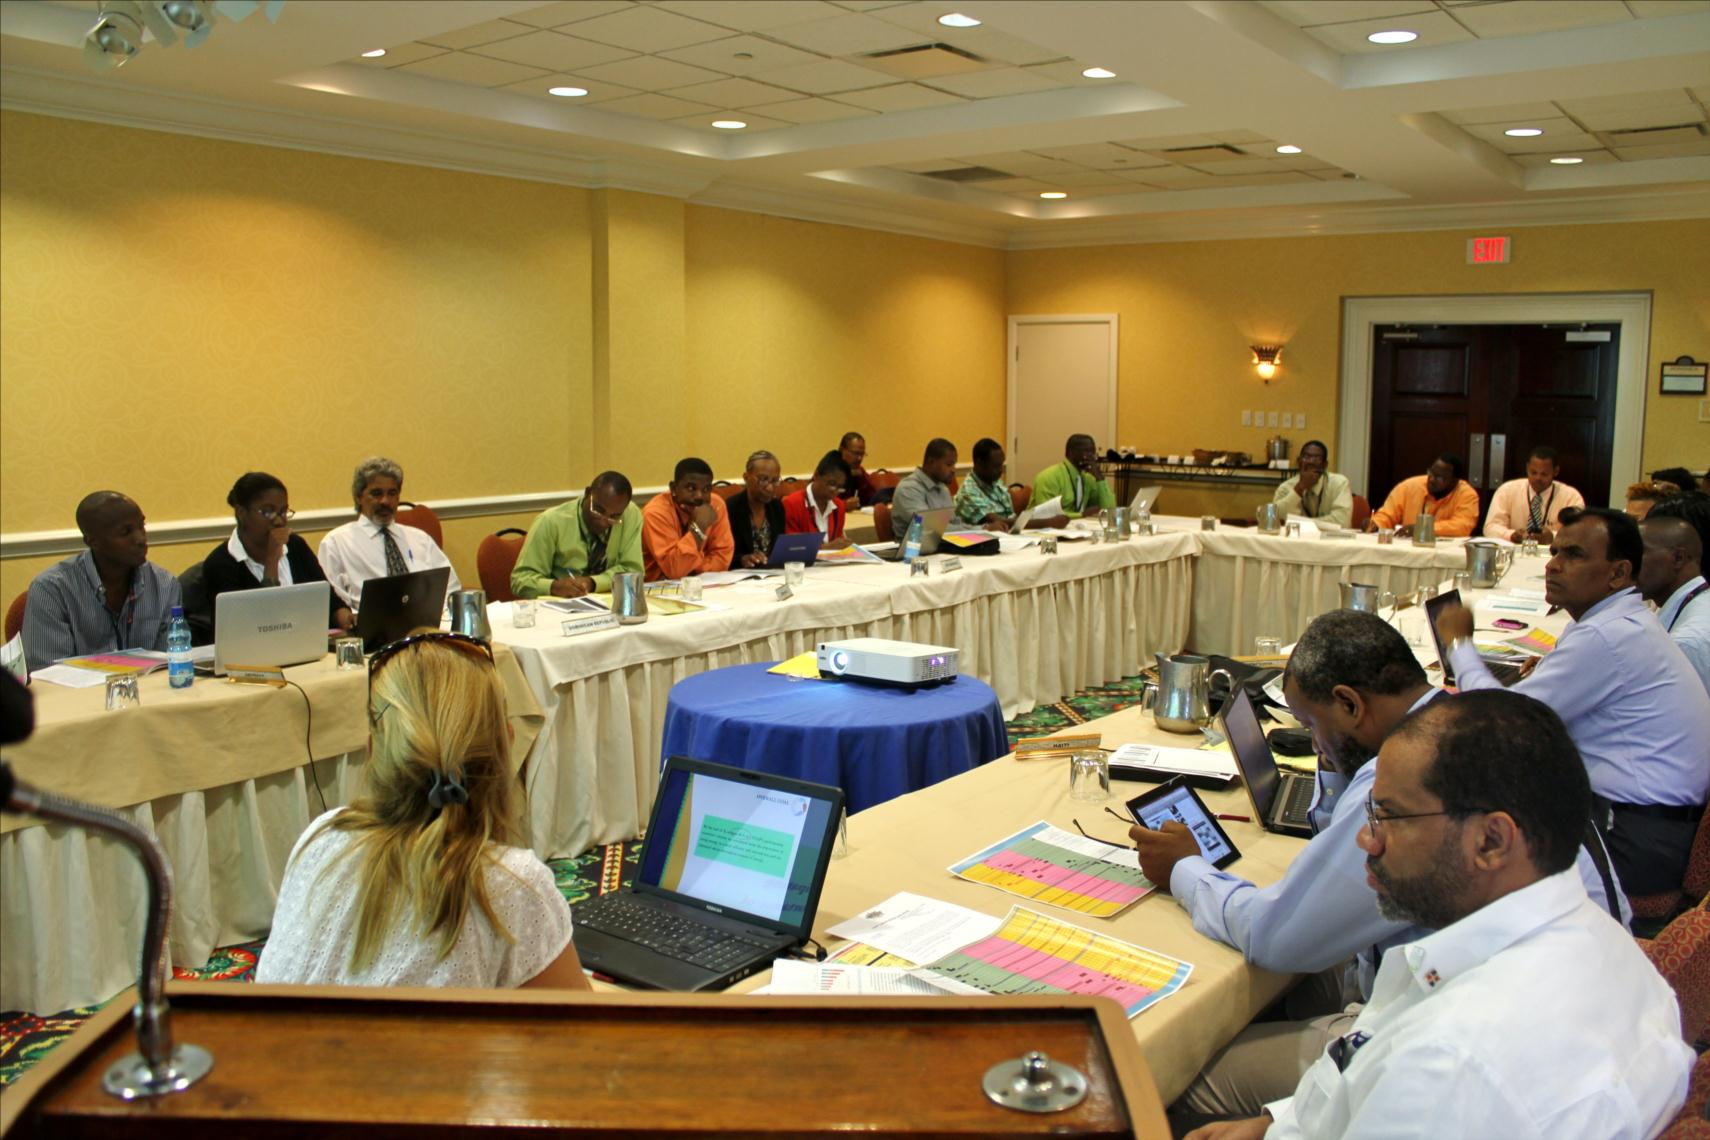 Plenary session on the oas initiative caribbean energy education and awareness programme (ceeap)642